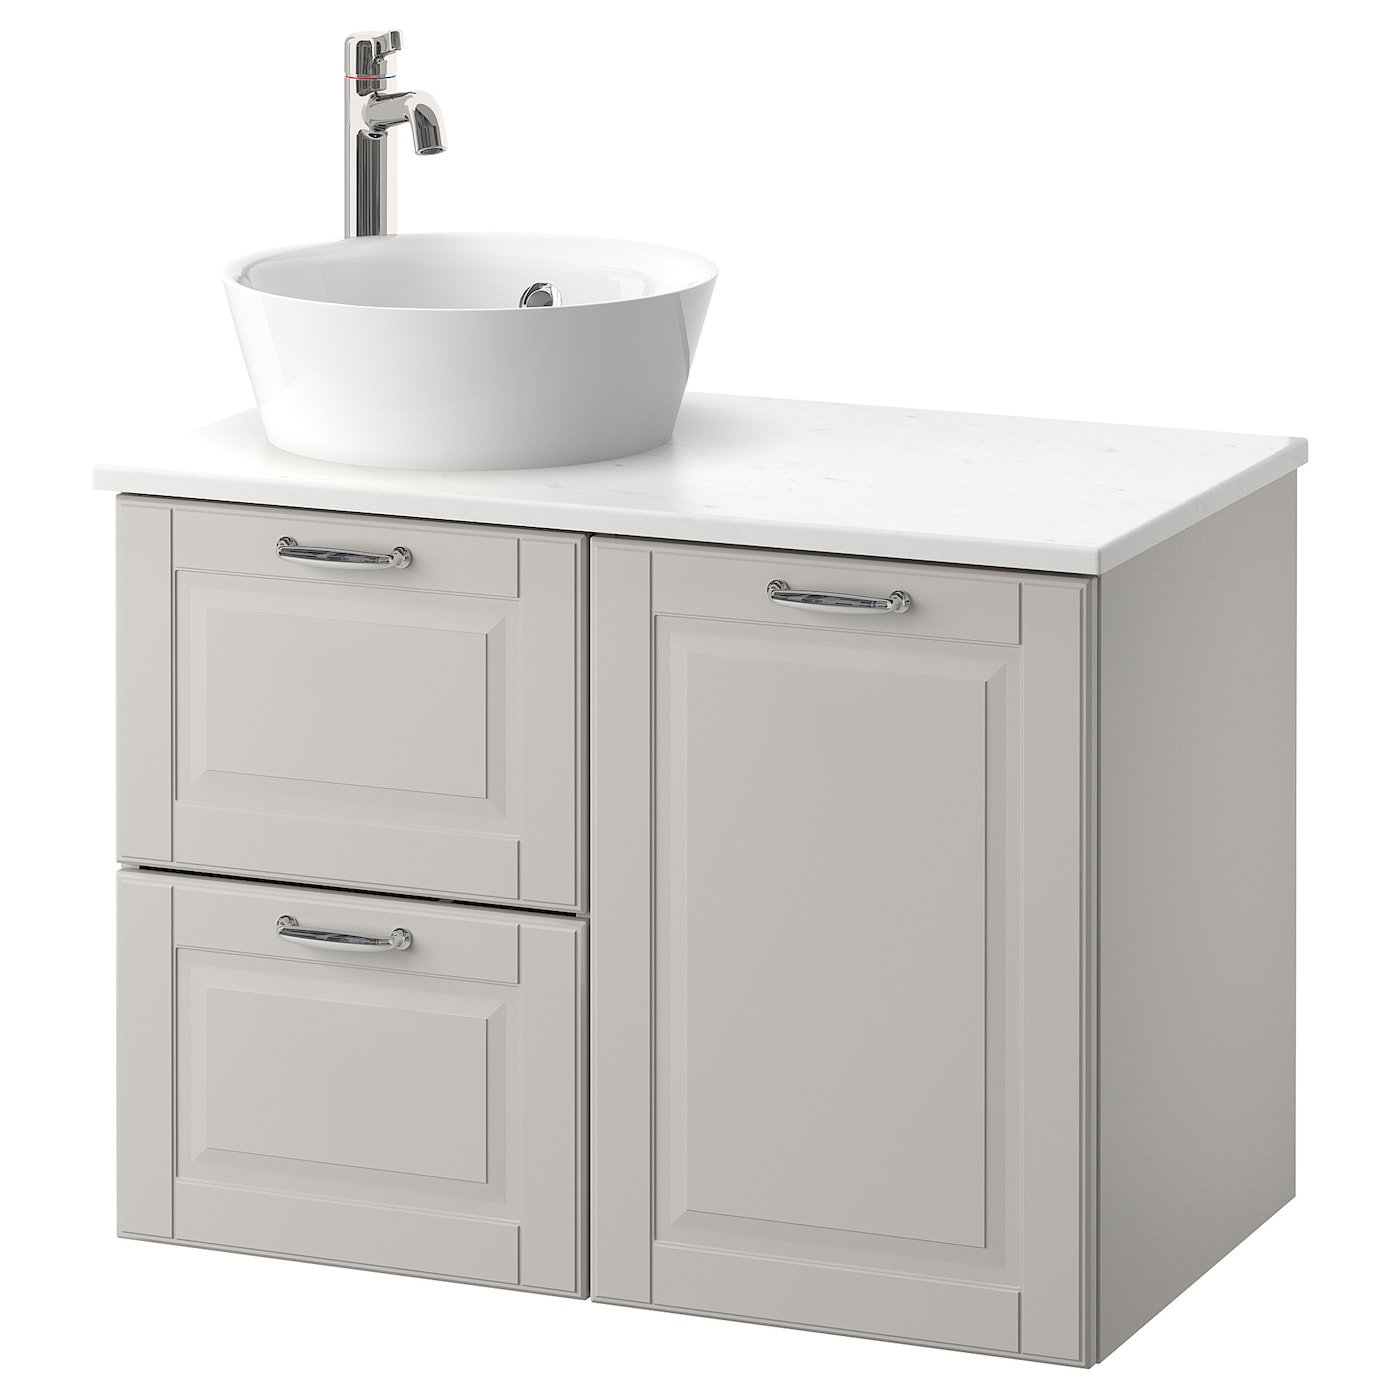 kattevik godmorgon tolken l ment lavabo avec lavabo poser kasj n gris clair marbr 82x49x75. Black Bedroom Furniture Sets. Home Design Ideas